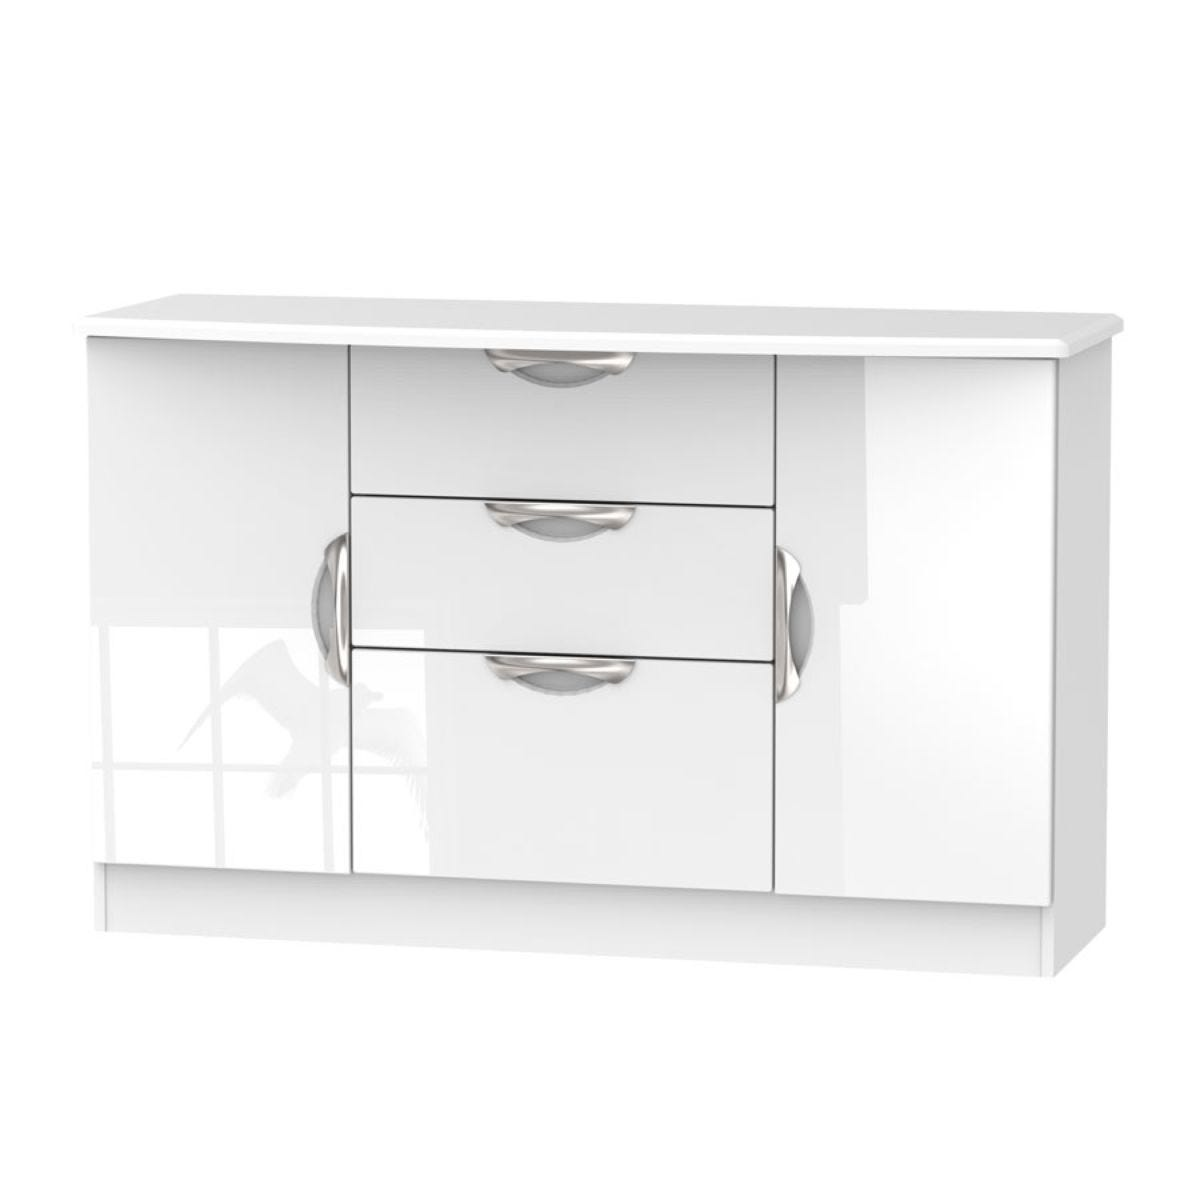 Indices 3-Drawer, Double Door Sideboard - White